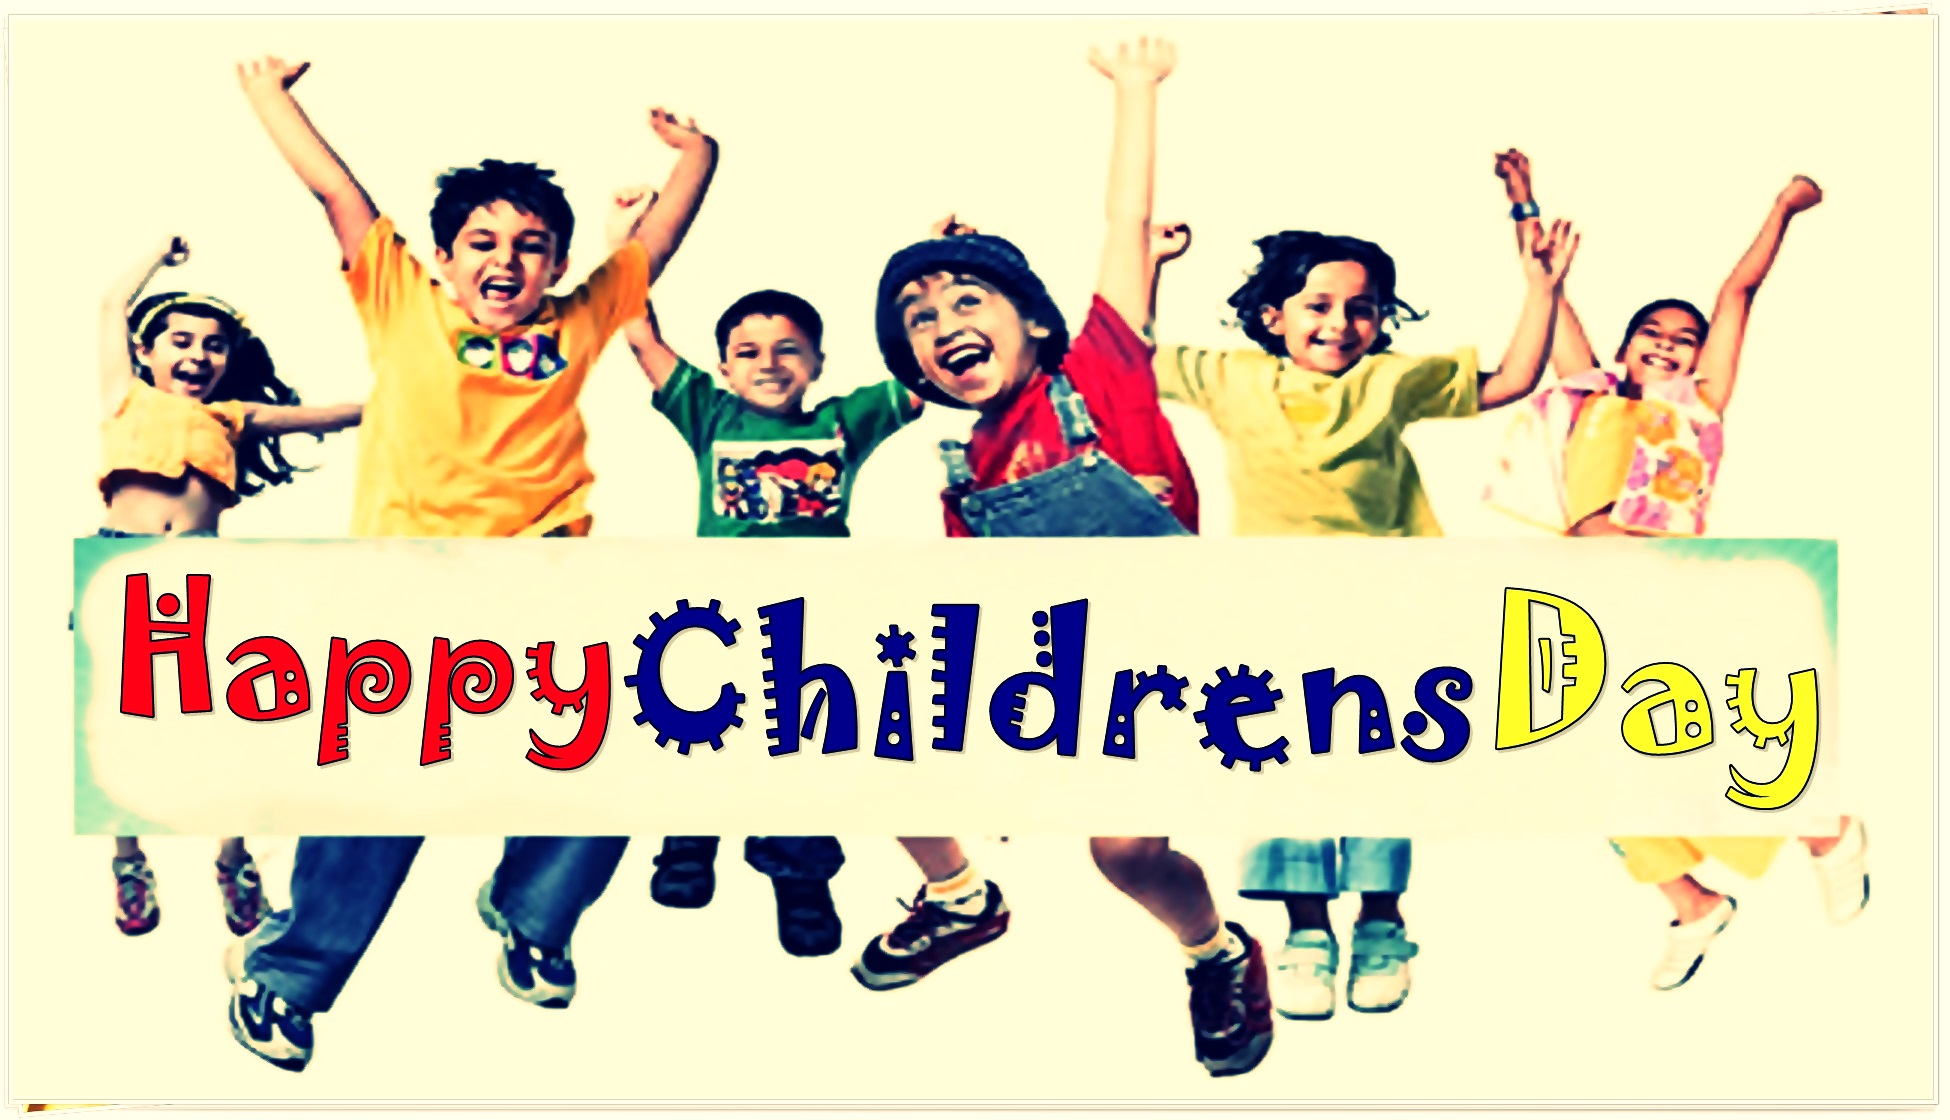 Happy Children's Day: Awaken the Child in You